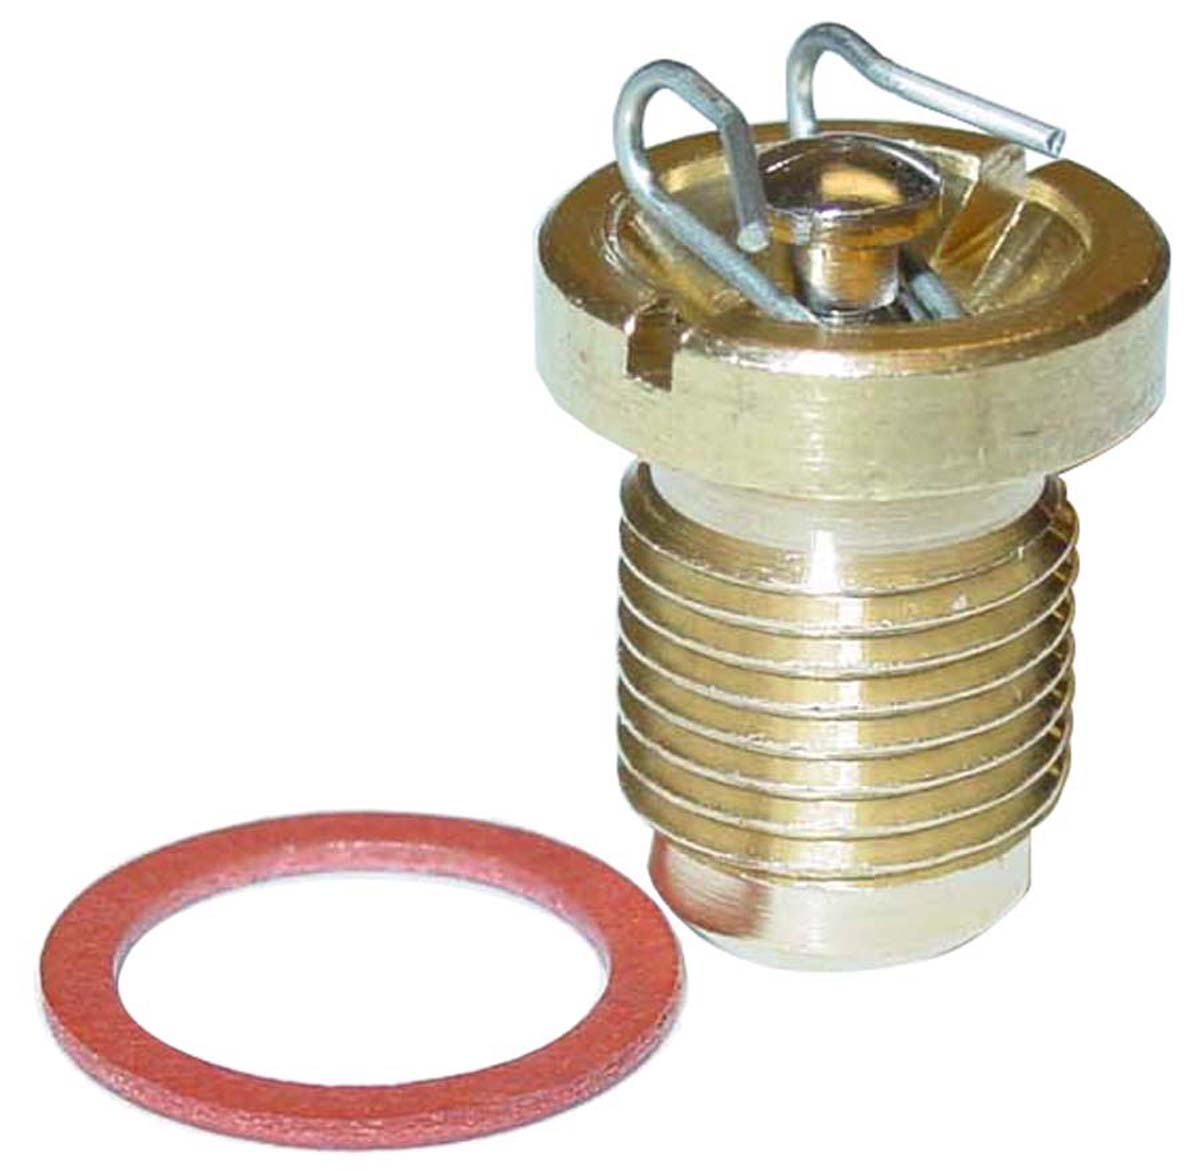 Viton Needle Float Valve For Marvel Schebler Carburetors Fits Oliver: 60, 66, Super 66, Super 77, and 660. PLEASE SEE CARB #\'S BELOW: All Carburetors With TSX49, TSX120, TSX363. Viton Needle and Seat Valves help stop Carburetor flooding. Made in the USA.